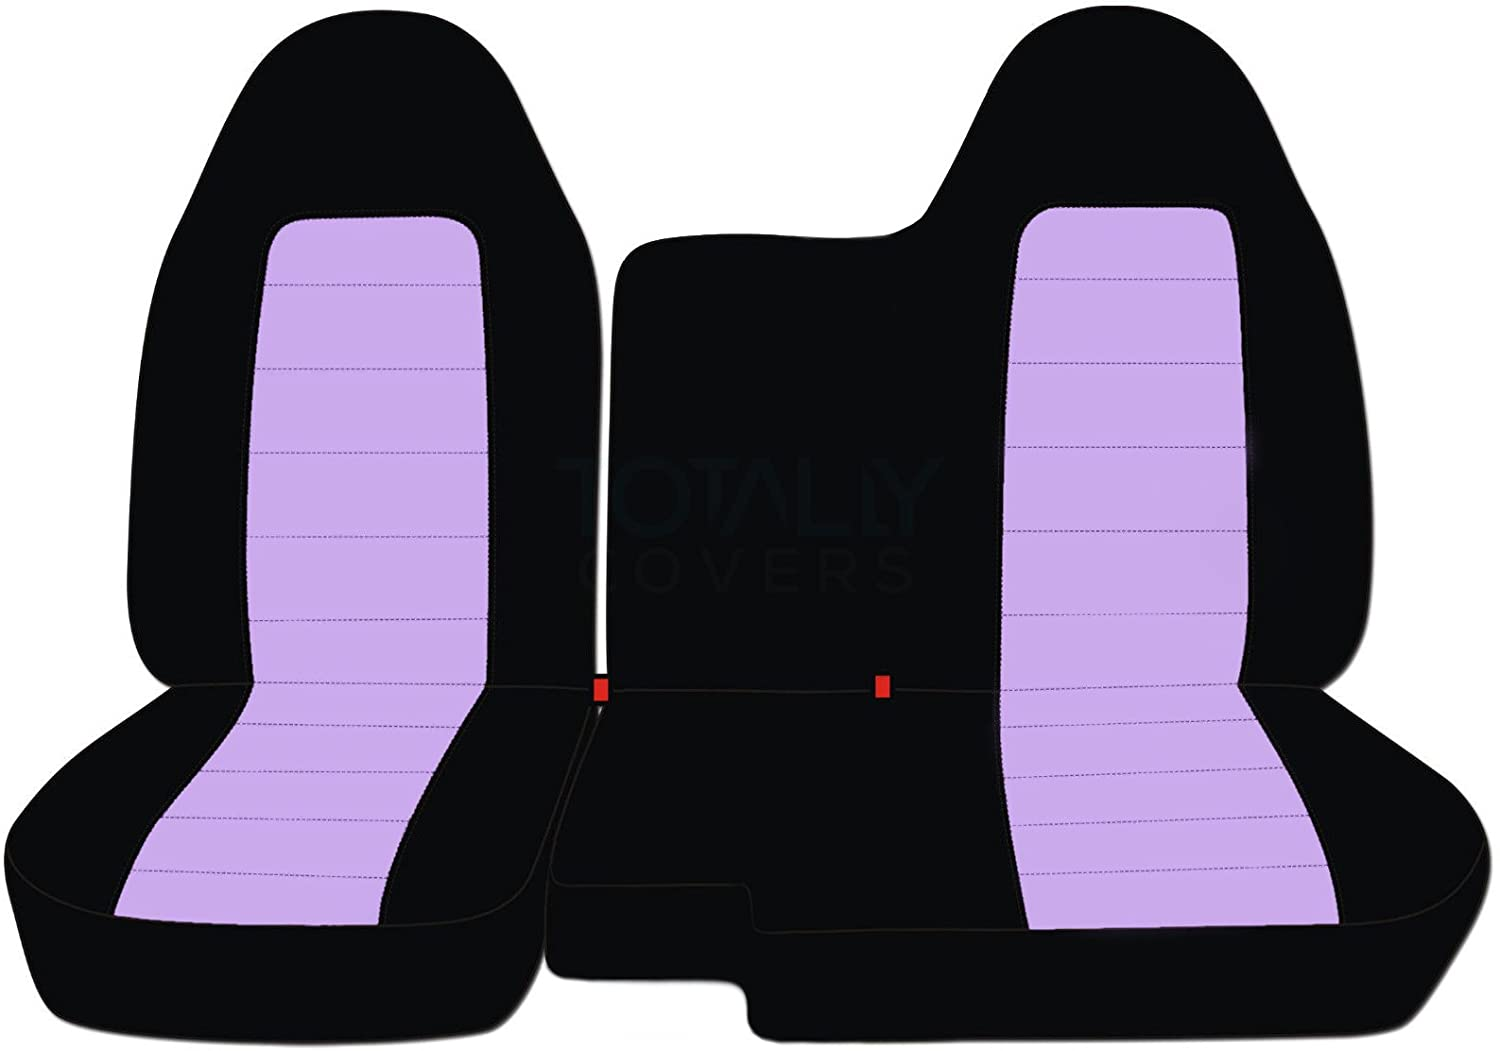 Designcovers 1998-2003 Ford Ranger/Mazda B-Series Two-Tone Truck Seat Covers (60/40 Split Bench) - No Armrest/Console: Black and Blue (21 Colors) 1999 2000 2001 2002